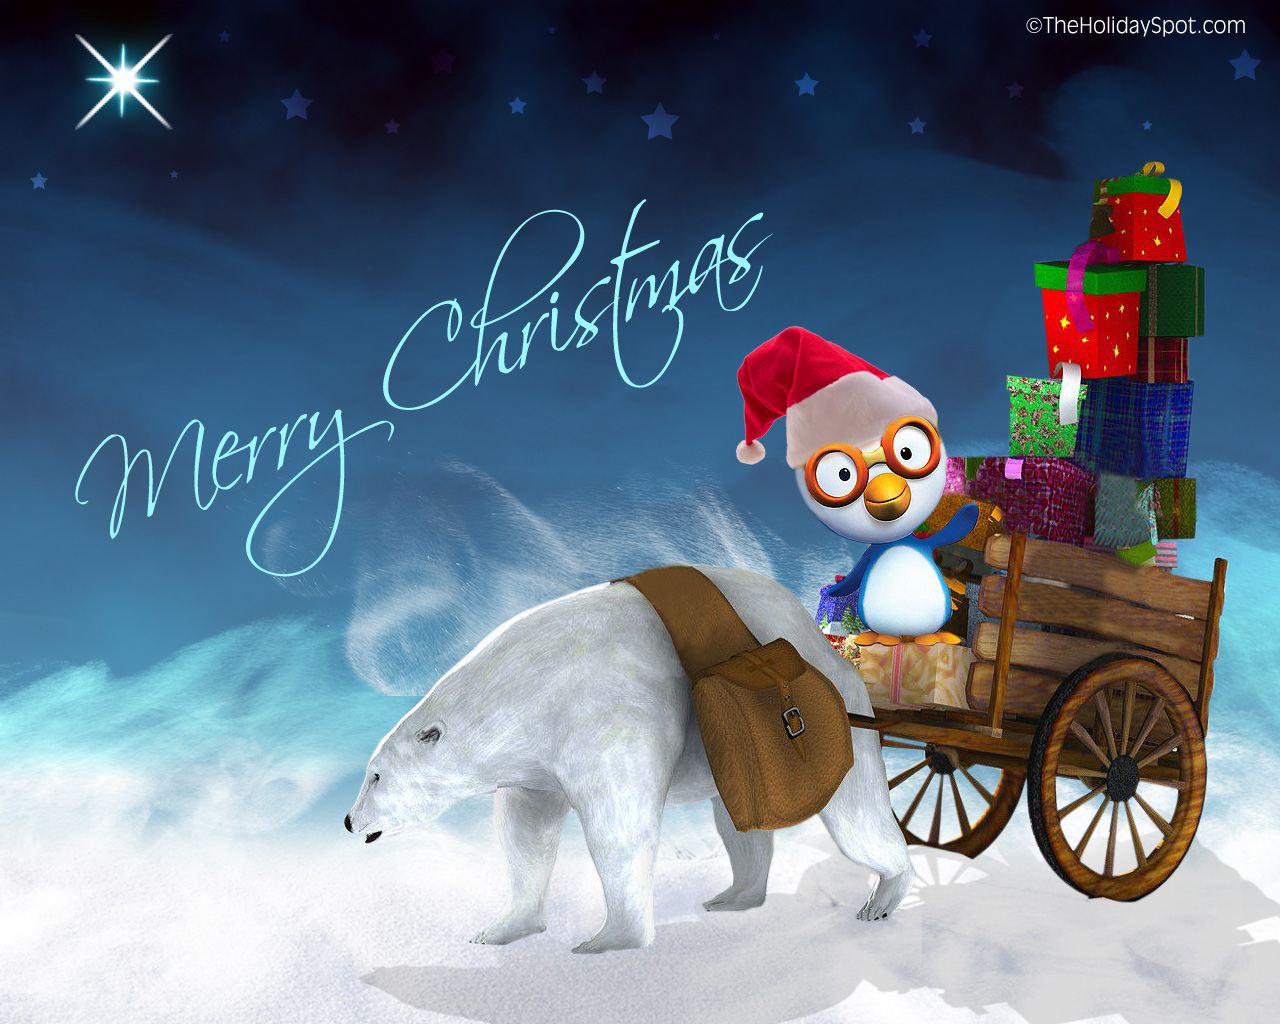 Merry Christmas Wallpapers HD HD Wallpapers Backgrounds 1280x1024